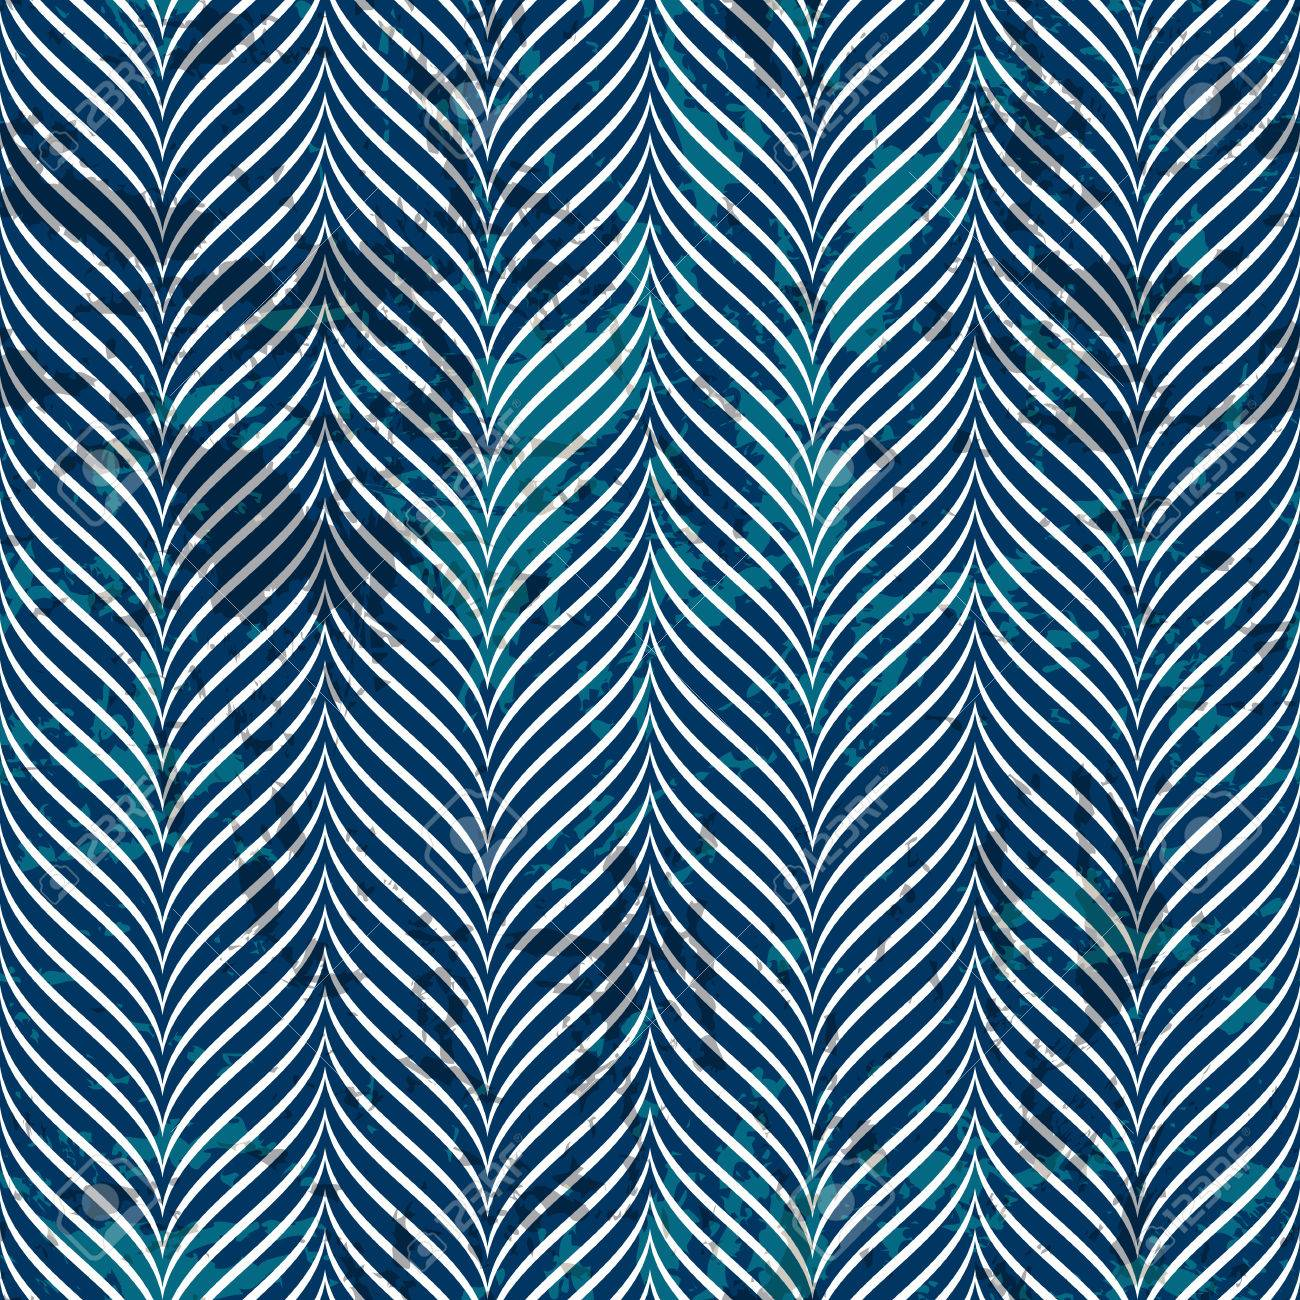 Blue And White Vector Seamless Chevron Pattern For Printing